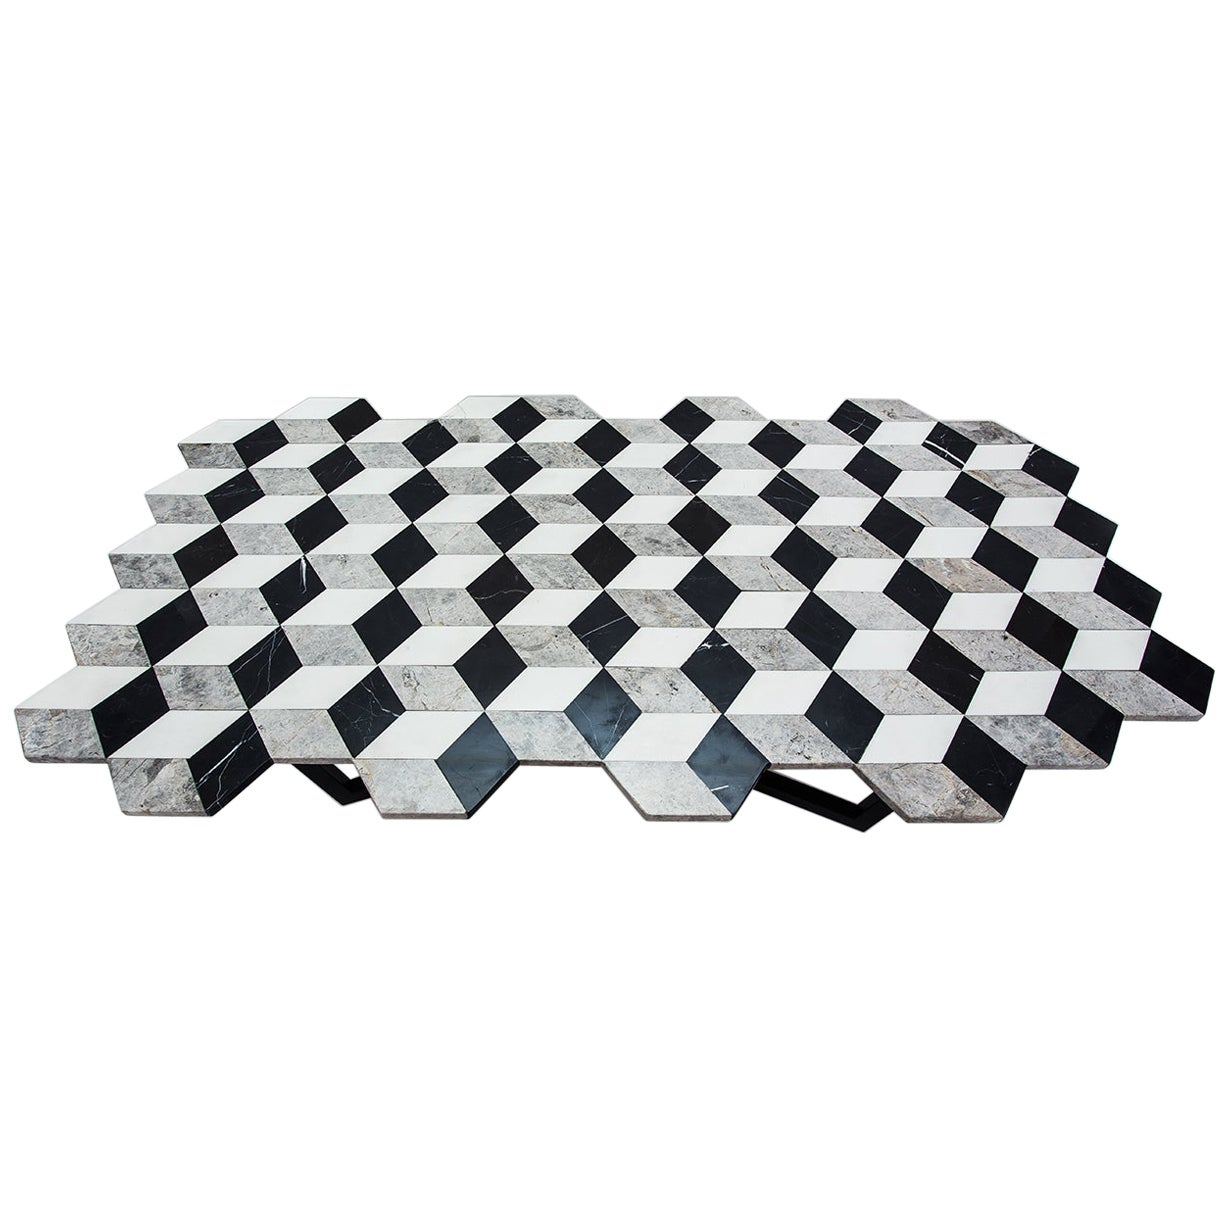 21st Century Diplopia Monochrome X-Large Cubic Marble Coffee Table